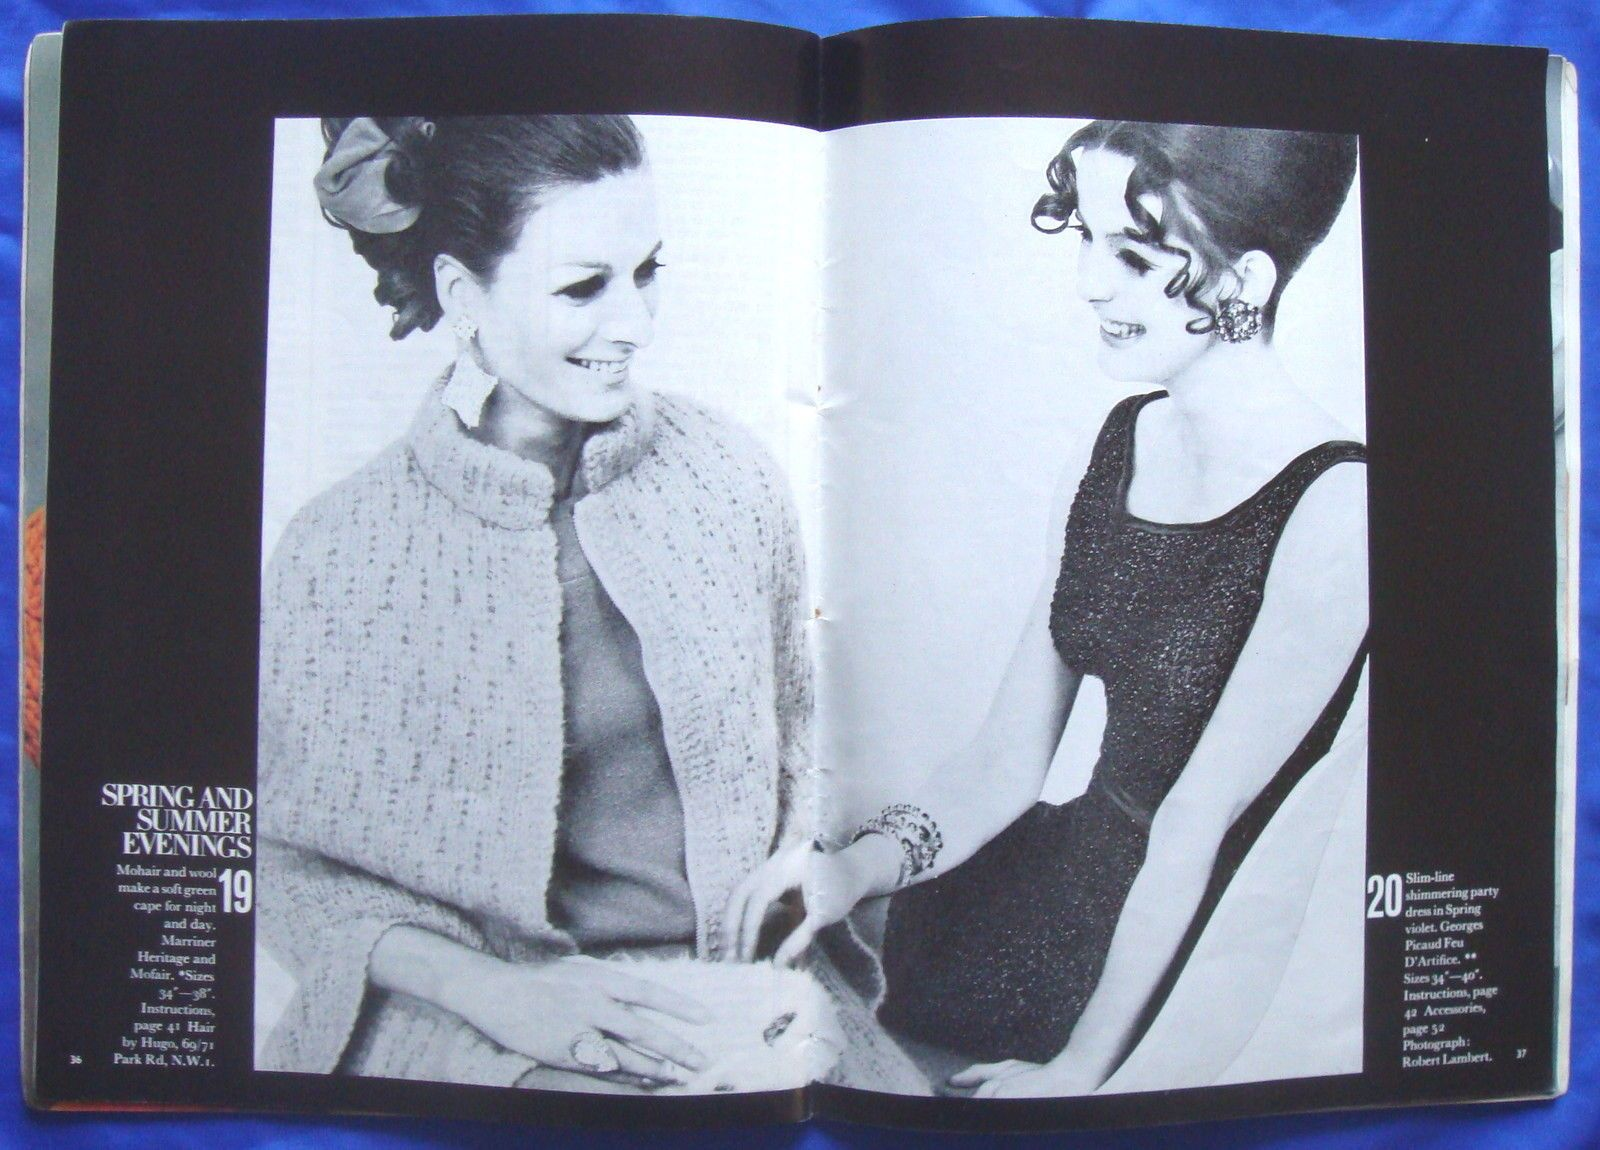 Vintage vogue knitting pattern booklet book 1960s jumpercardigan vintage vogue knitting pattern booklet book 1960s jumpercardigandress etc ebay bankloansurffo Choice Image